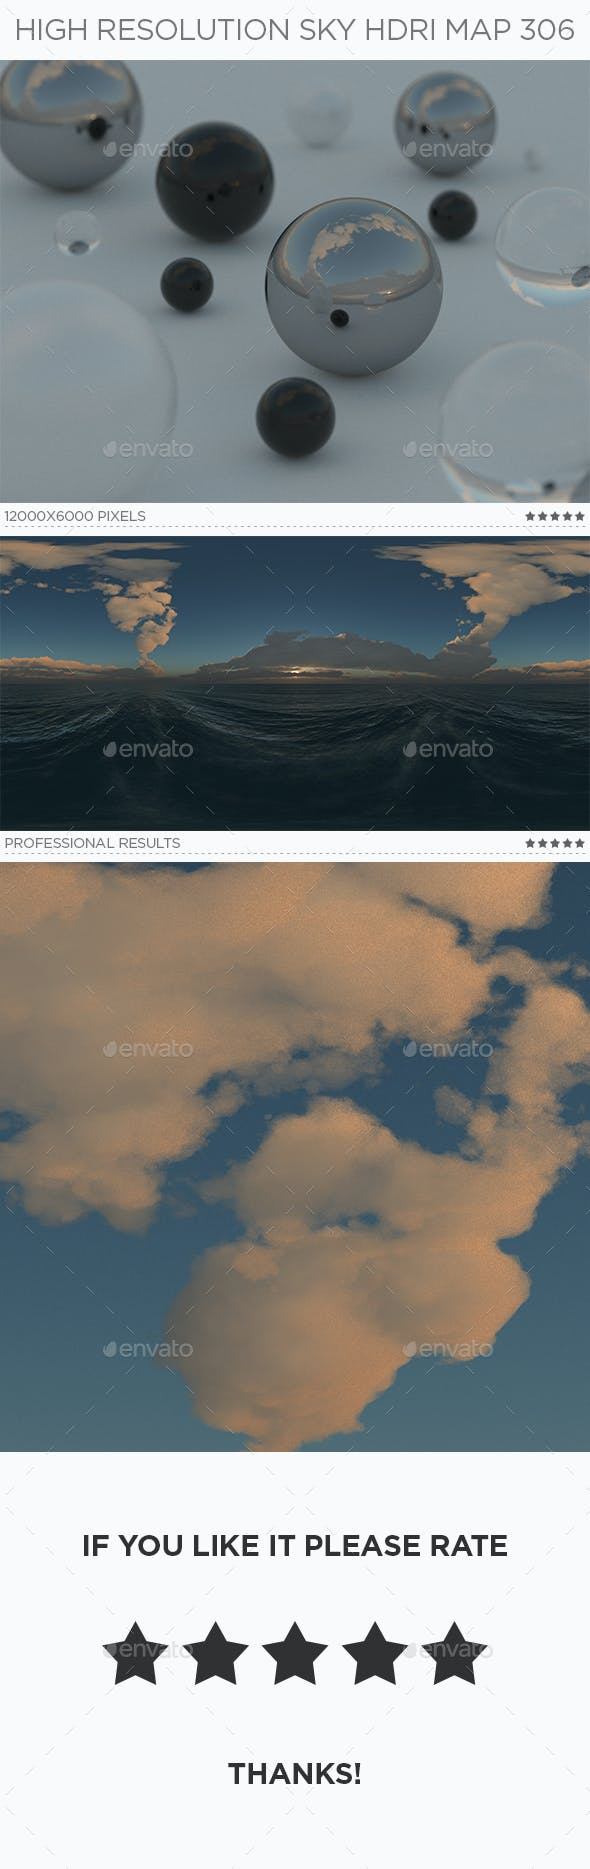 High Resolution Sky HDRi Map 306 - 3DOcean Item for Sale